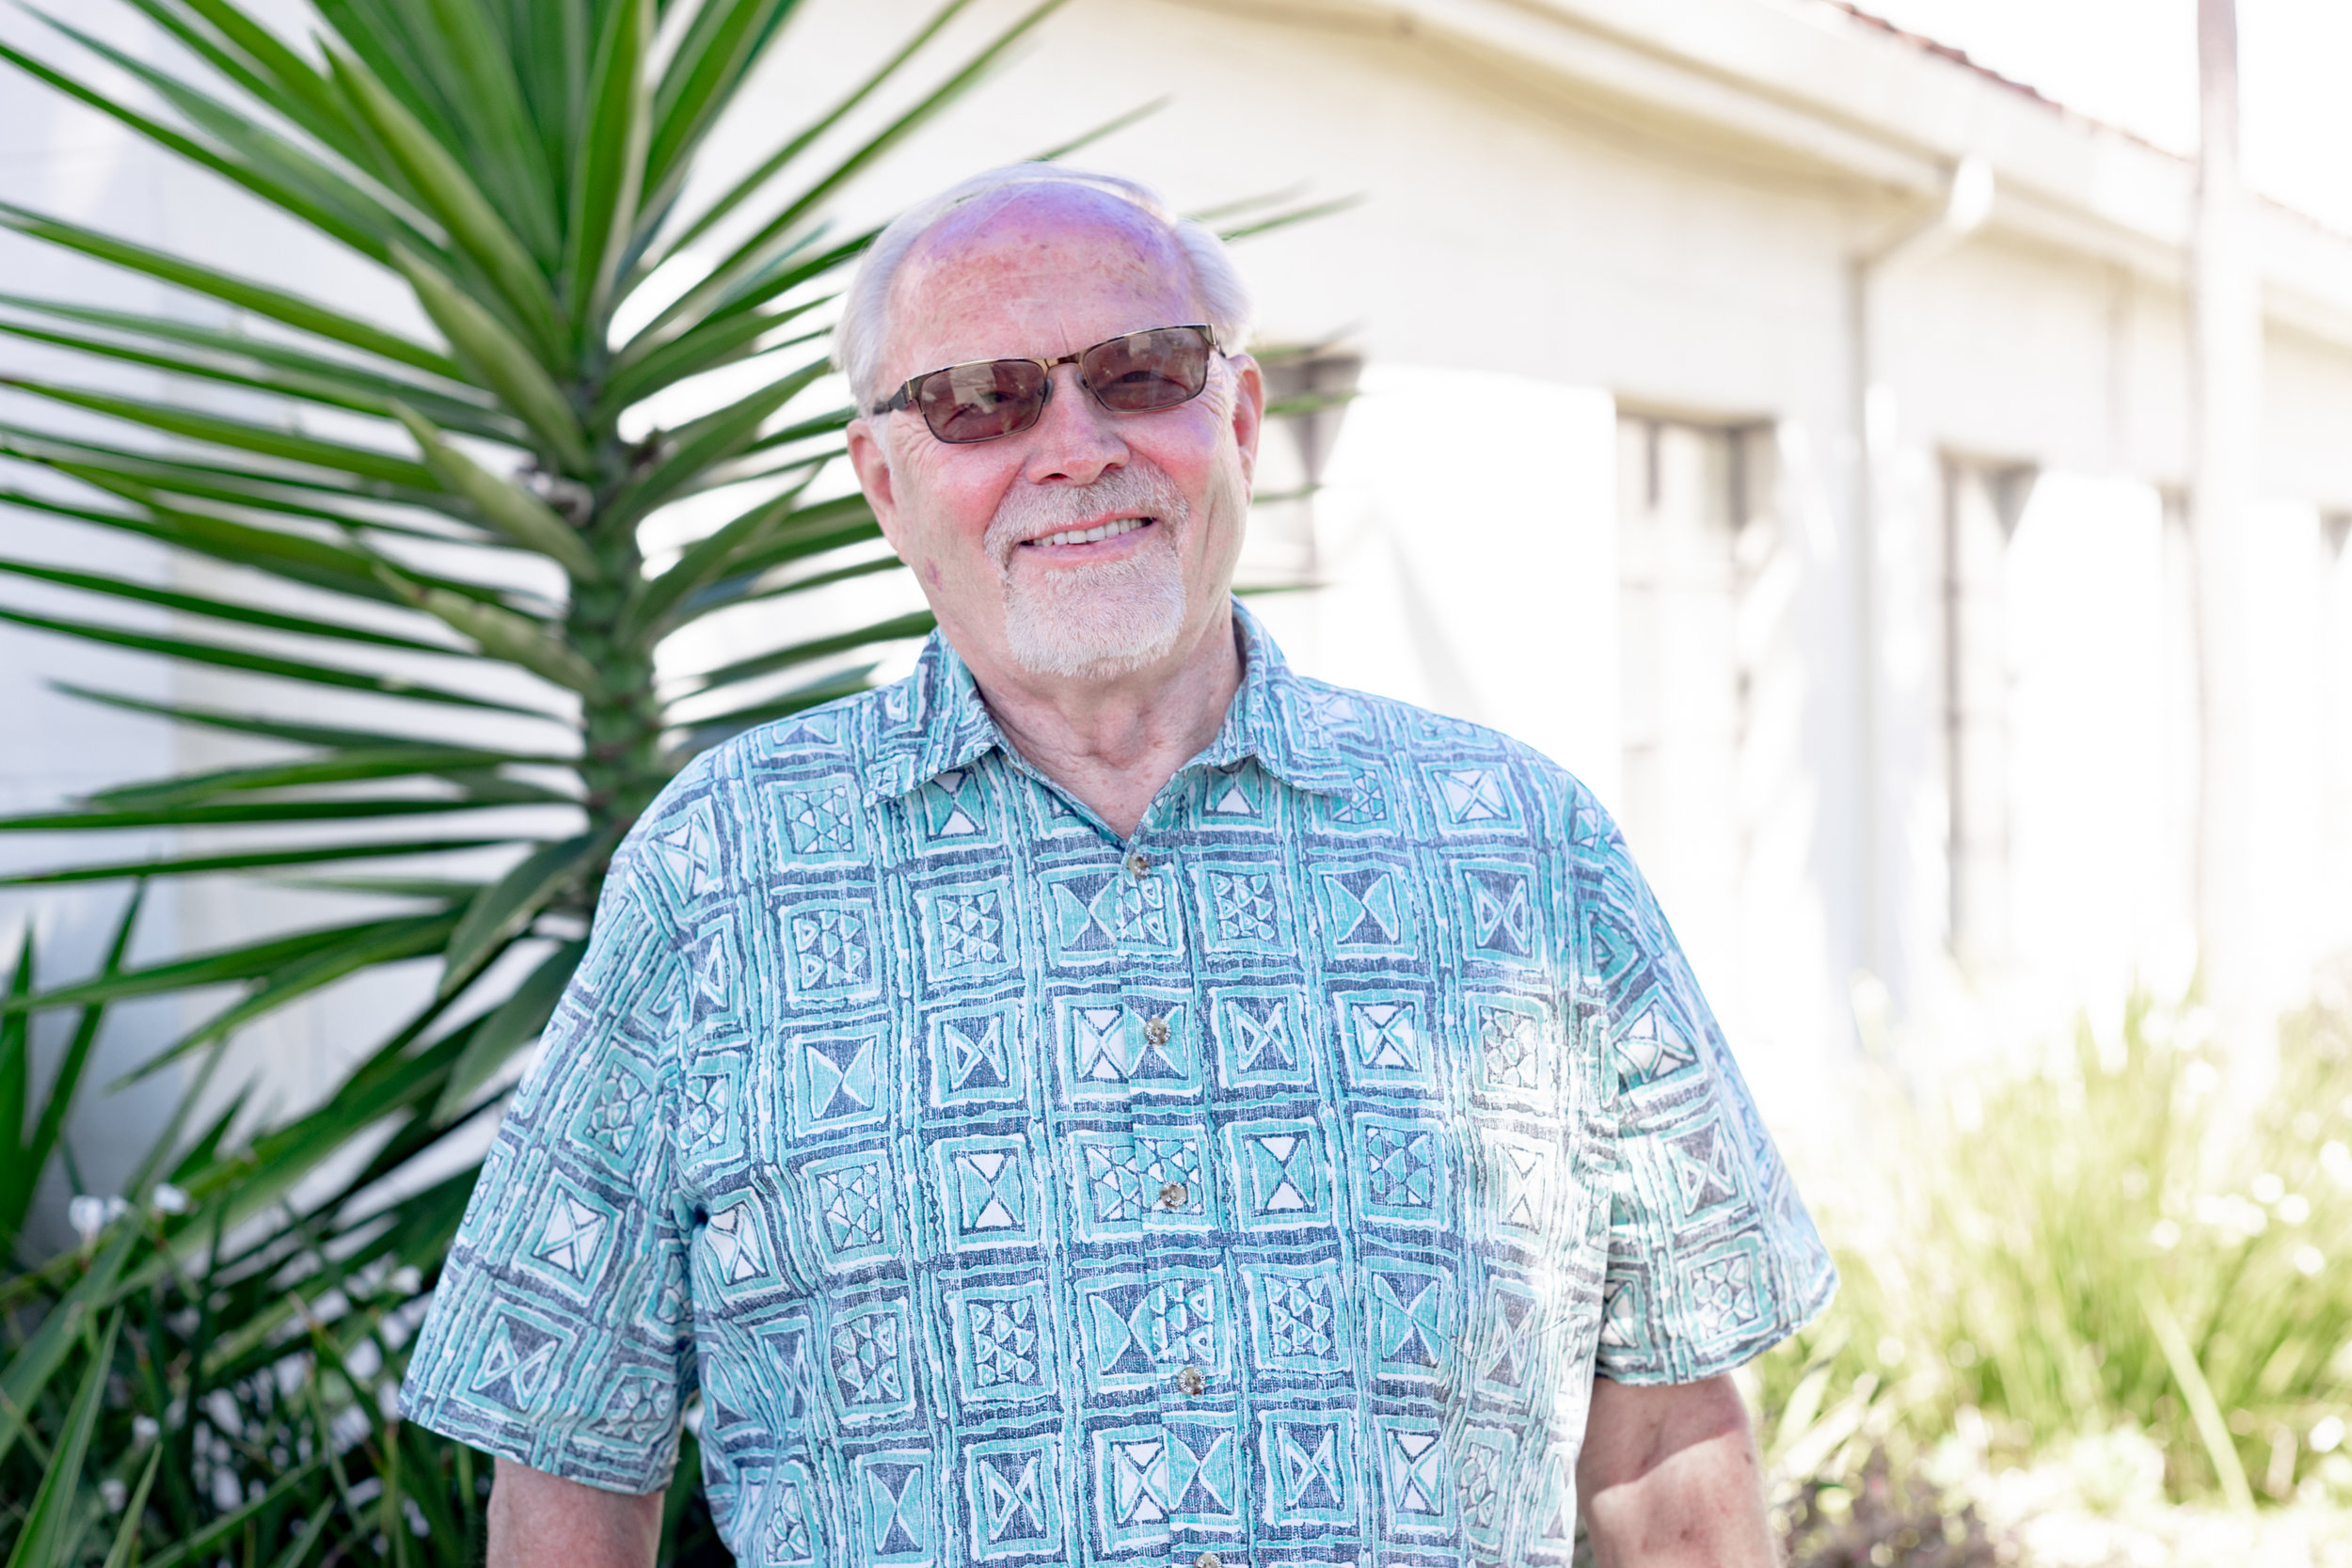 "Pastor Wayne CarlsonTransition Pastor - Pastor Carlson will be on site for Sunday mornings, Tuesdays, and Wednesdays (or Thursdays, depending upon meetings being scheduled) three weeks per month.Life verse: ""Trust in the Lord with all your heart and lean not on your own understanding; in all your ways acknowledge and he will direct your paths."" Proverbs 3:5-6Wayne has been married to Judy for 48 years. They have three sons, two daughters-in-law and five grandchildren – four girls and a boy (four months to 8 years old). He grew up in a Christian home, and made a first-time decision to follow Jesus when he was ten years old. He am a graduate of North Park University in Chicago and Fuller Theological Seminary in Pasadena. He is ordained with the Evangelical Covenant Church, and has served in various pastoral capacities for 50+ years, including 14 years on the staff of the Pacific Southwest Conference. Wayne is a pastor at heart. He loves the church and believes the church is God's primary strategy for reaching the spiritually-lost with the good news of Jesus Christ. On a more personal level, Judy and Wayne enjoy spending time with their family (and friends), occasional trips to the Napa Valley and walking for exercise. Their favorite vacation spot is San Clemente, CA but they enjoy time in Hawaii as well. Wayne is grateful for God's faithfulness to he and his family, and desires to serve him faithfully as well."